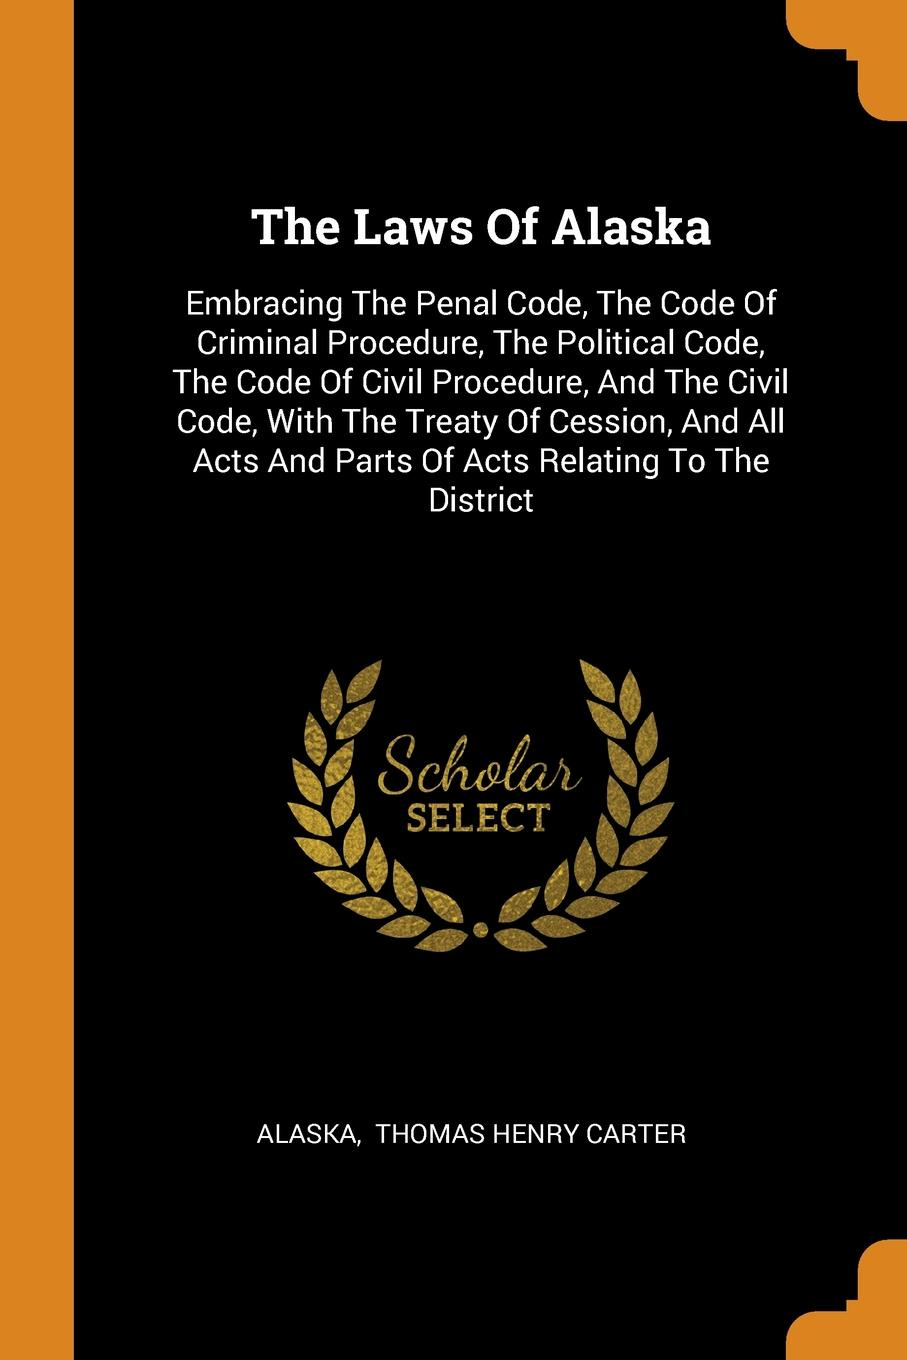 Фото - The Laws Of Alaska. Embracing The Penal Code, The Code Of Criminal Procedure, The Political Code, The Code Of Civil Procedure, And The Civil Code, With The Treaty Of Cession, And All Acts And Parts Of Acts Relating To The District рюкзак code code co073bwbyzk6